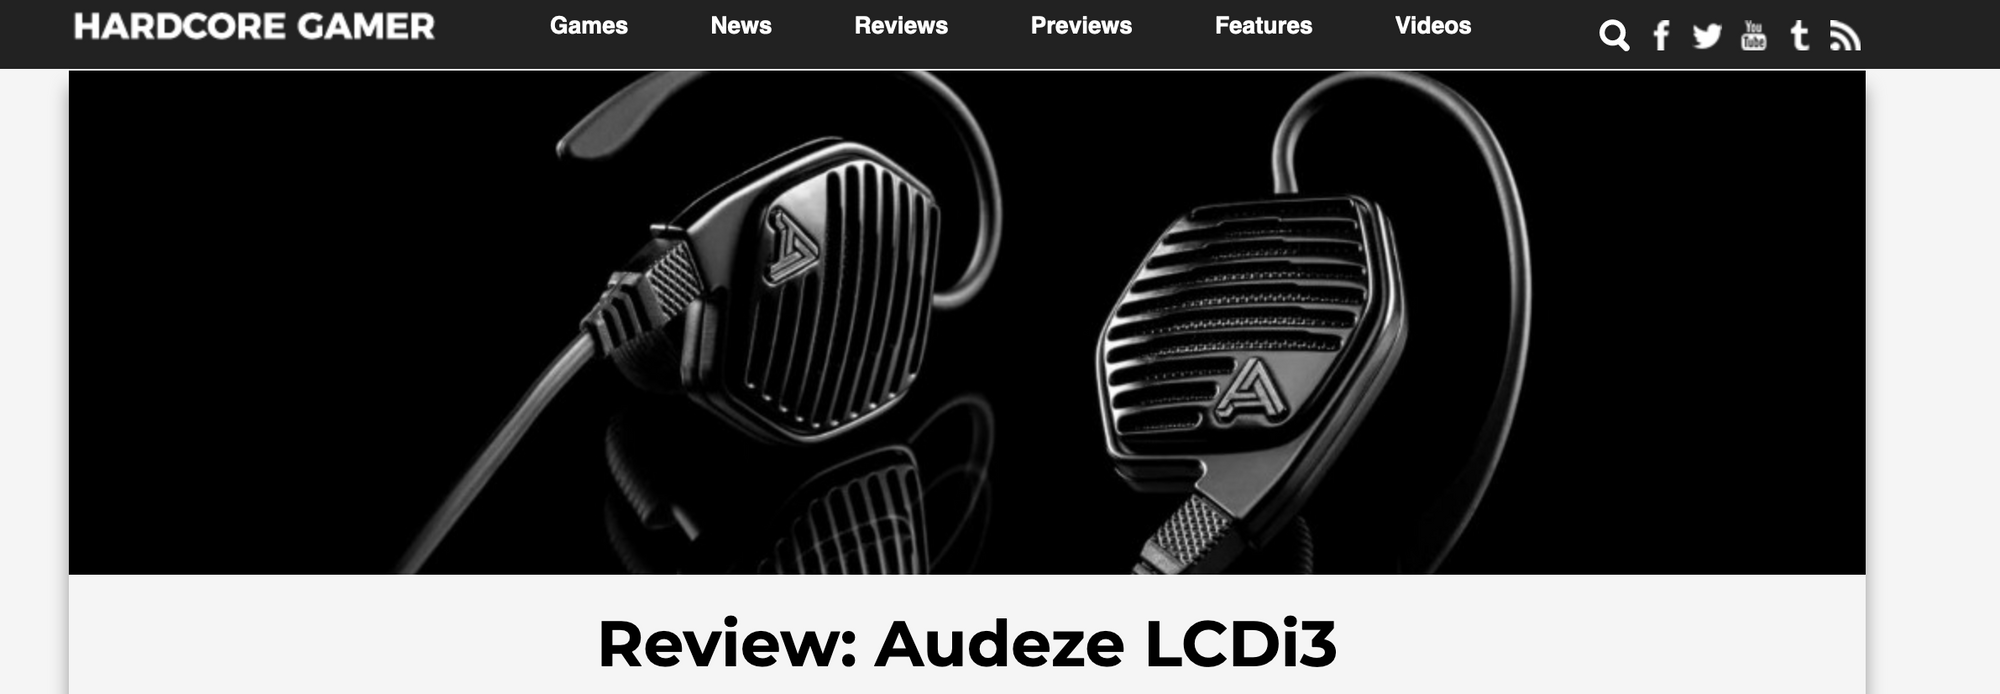 Hardcore Gamer Reviews the Audeze LCDi3